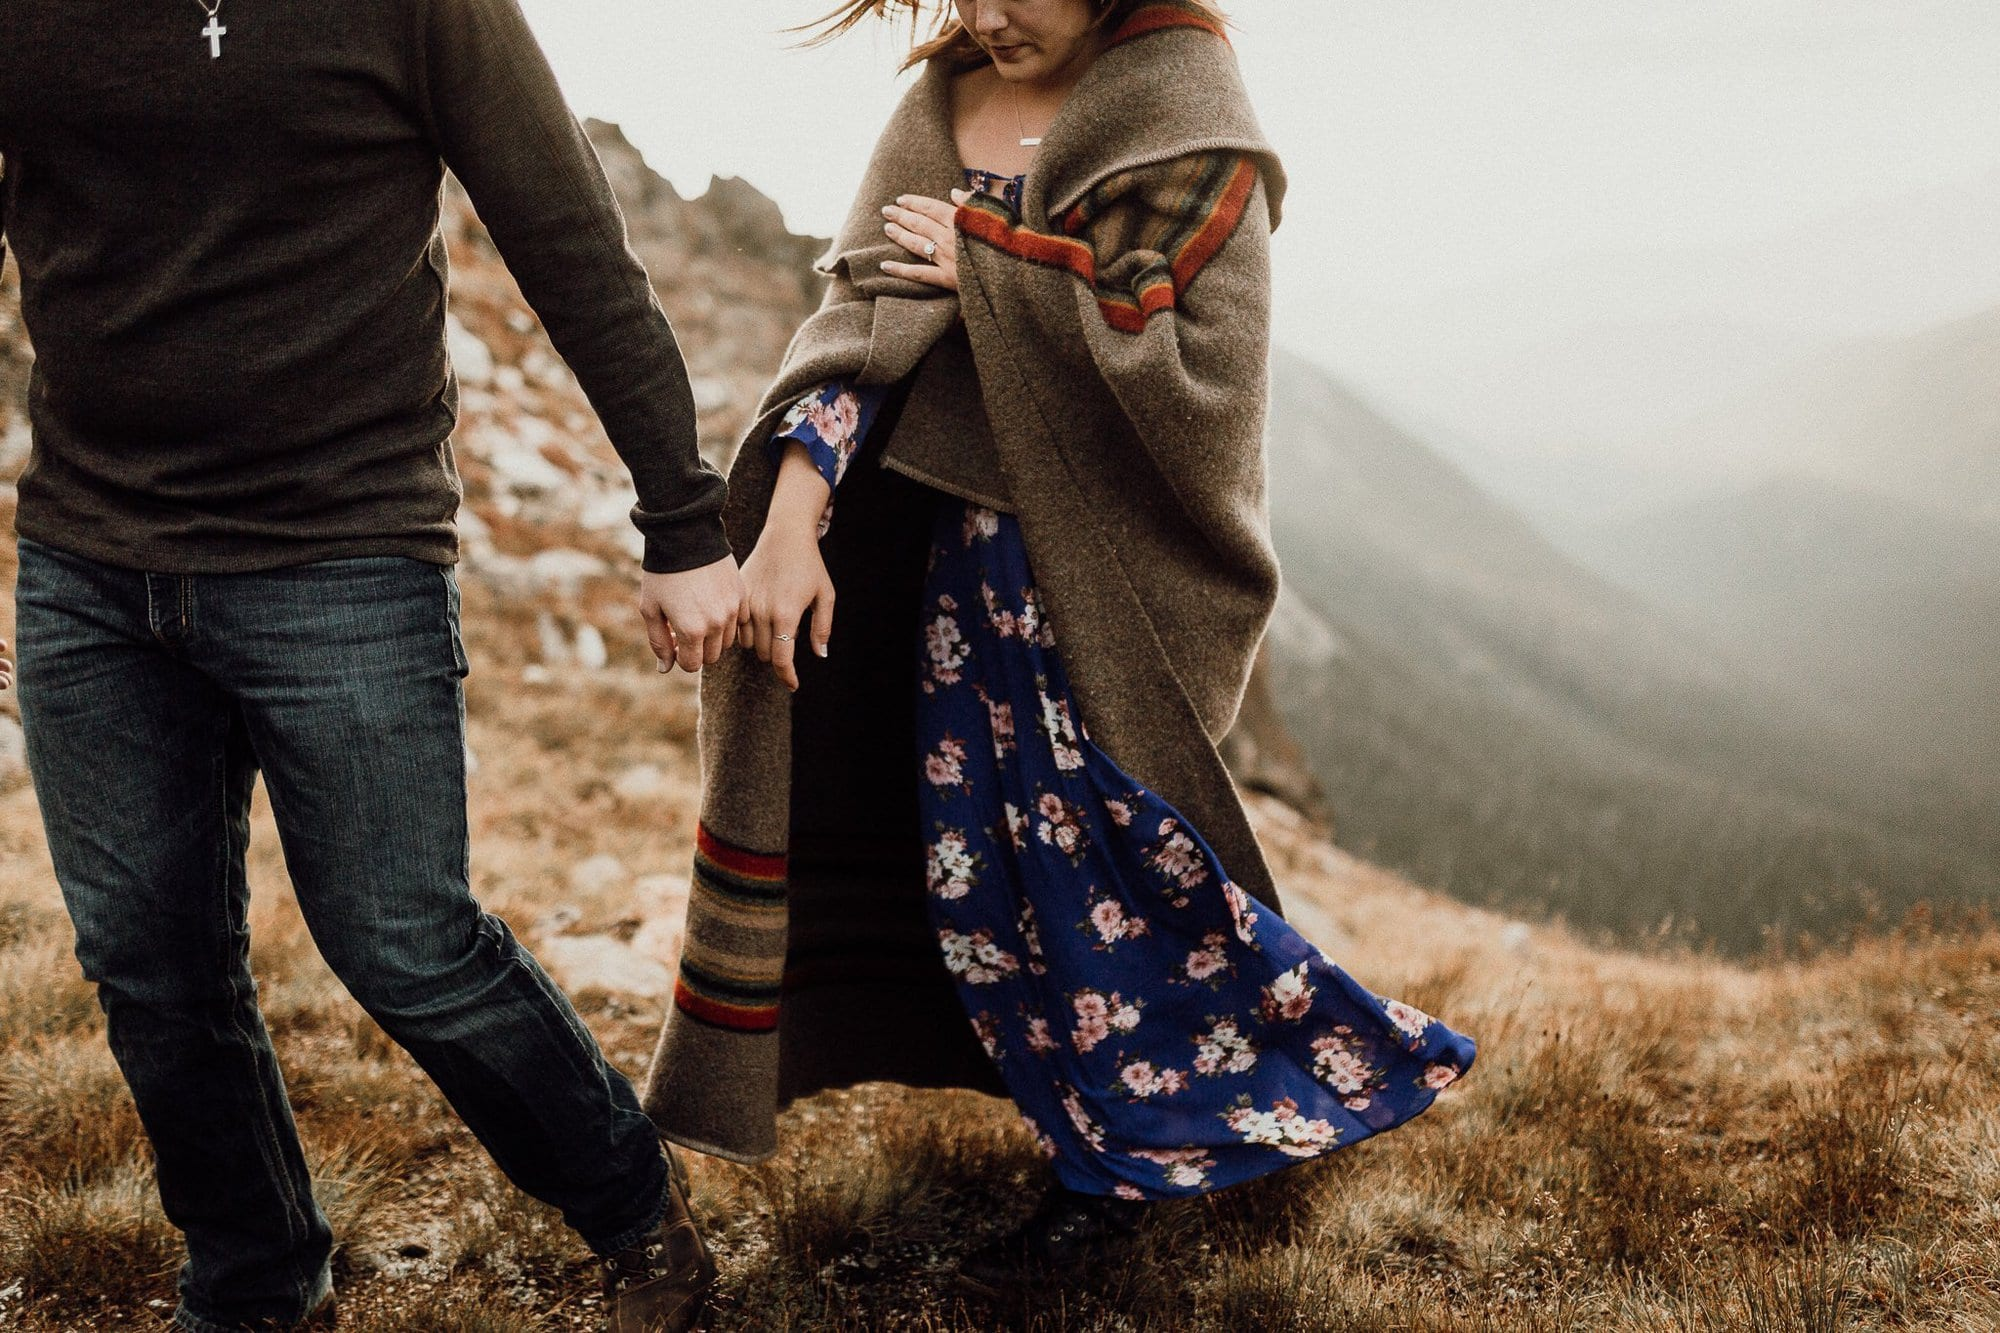 SUNRISE ROCKY MOUNTAIN ENGAGEMENT |TRAIL RIDGE ROAD ENGAGEMENT |Mattie + Austin| JUSTYNA E BUTLER PHOTOGRAPHY | ROCKY MOUNTAIN NATIONAL PARK ENGAGEMENT |COLORADO MOUNTAIN ENGAGEMENT PHOTOGRAPHER